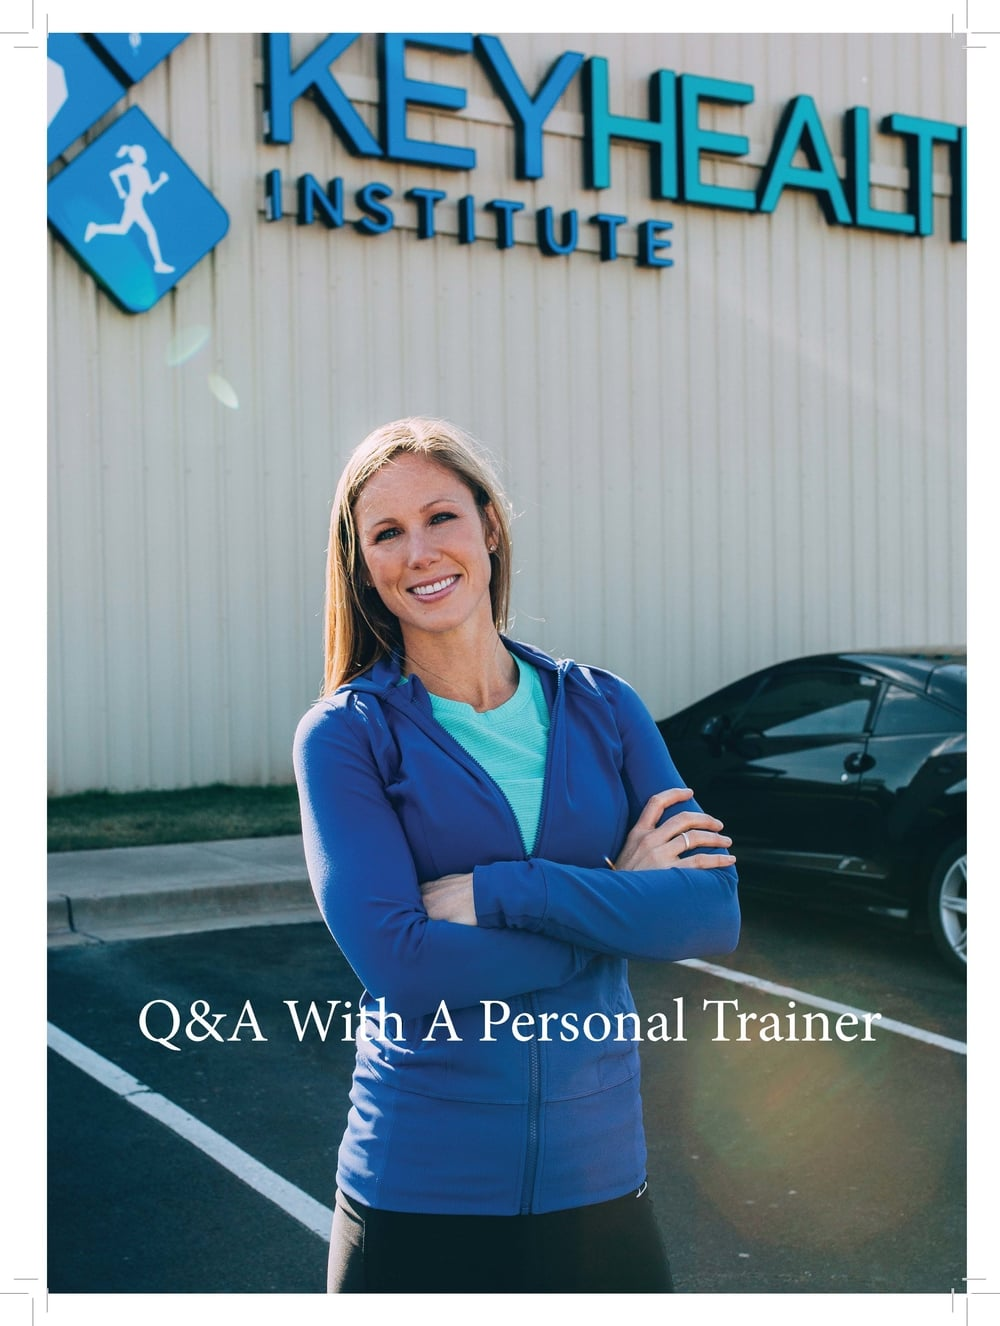 Q&A With A Personal Trainer